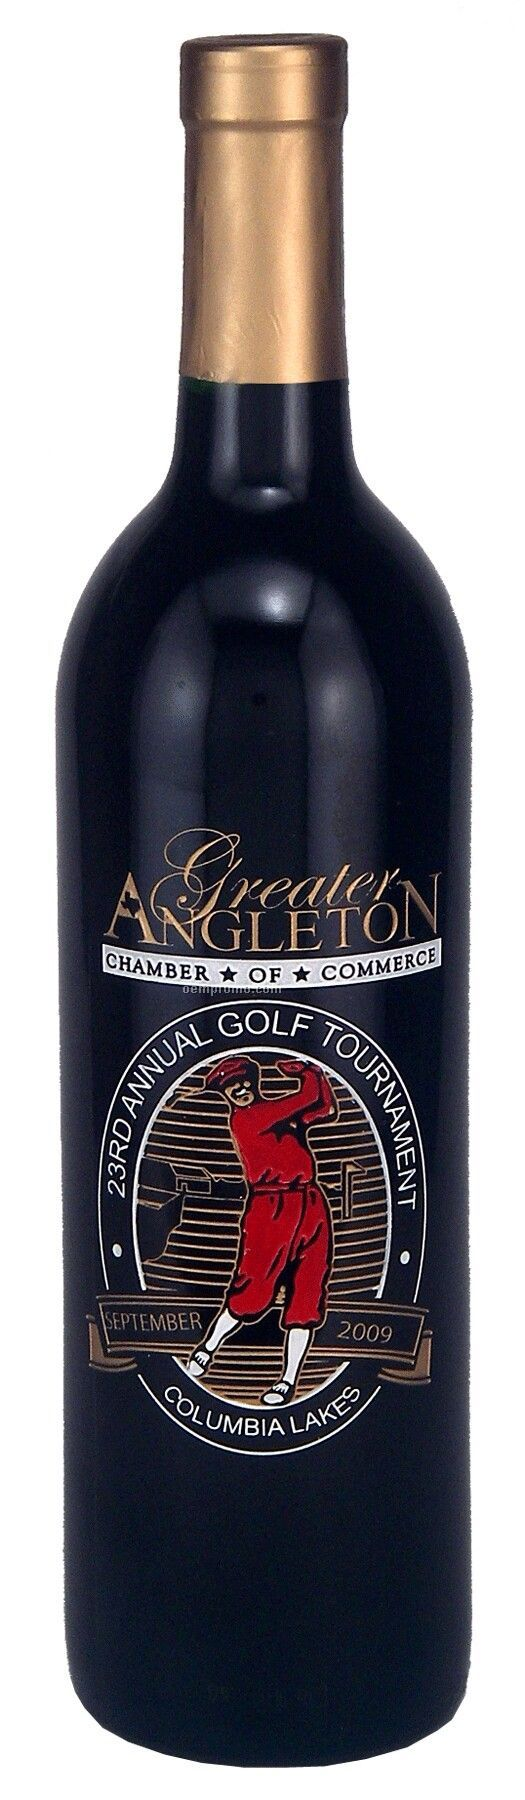 750ml Cabernet Sauvignon Wine Etched With 3 Color Fills